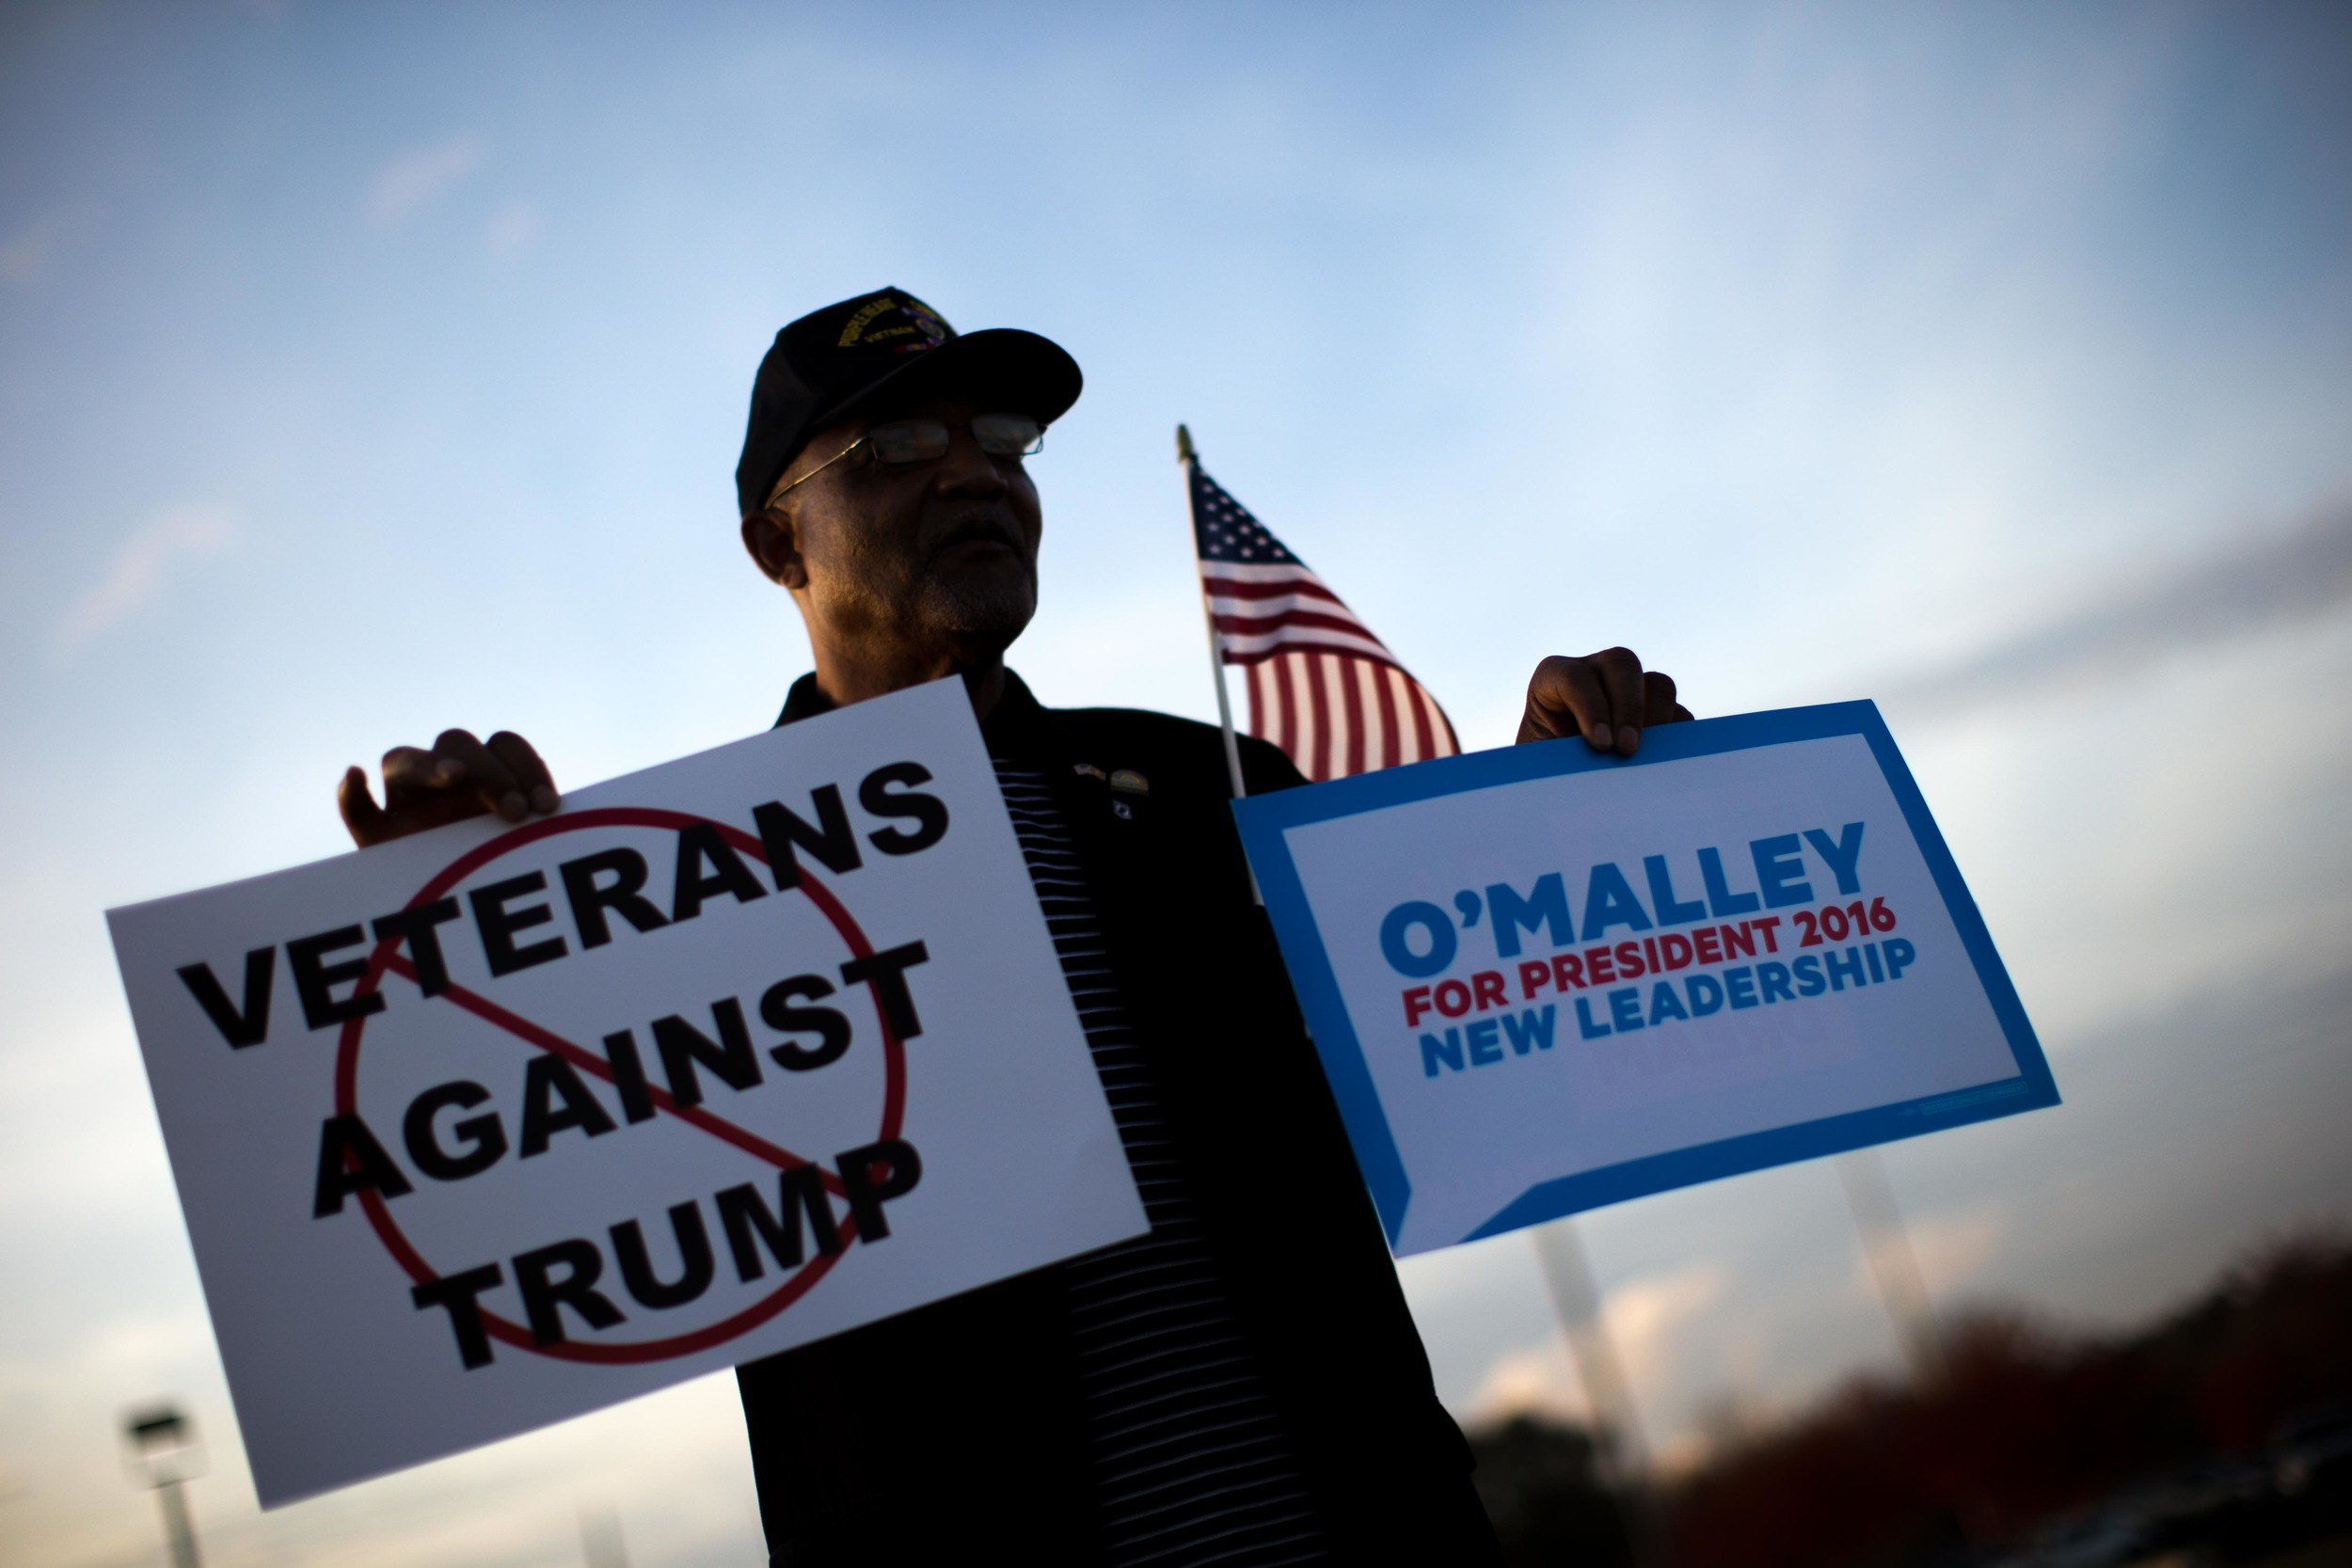 Former Macon Mayor C. Jack Ellis protests outside of the Macon Centreplex in Macon, Ga. where Republican presidential candidate Donald Trump is set to hold a campaign rally. (Ap Photo/Branden Camp)